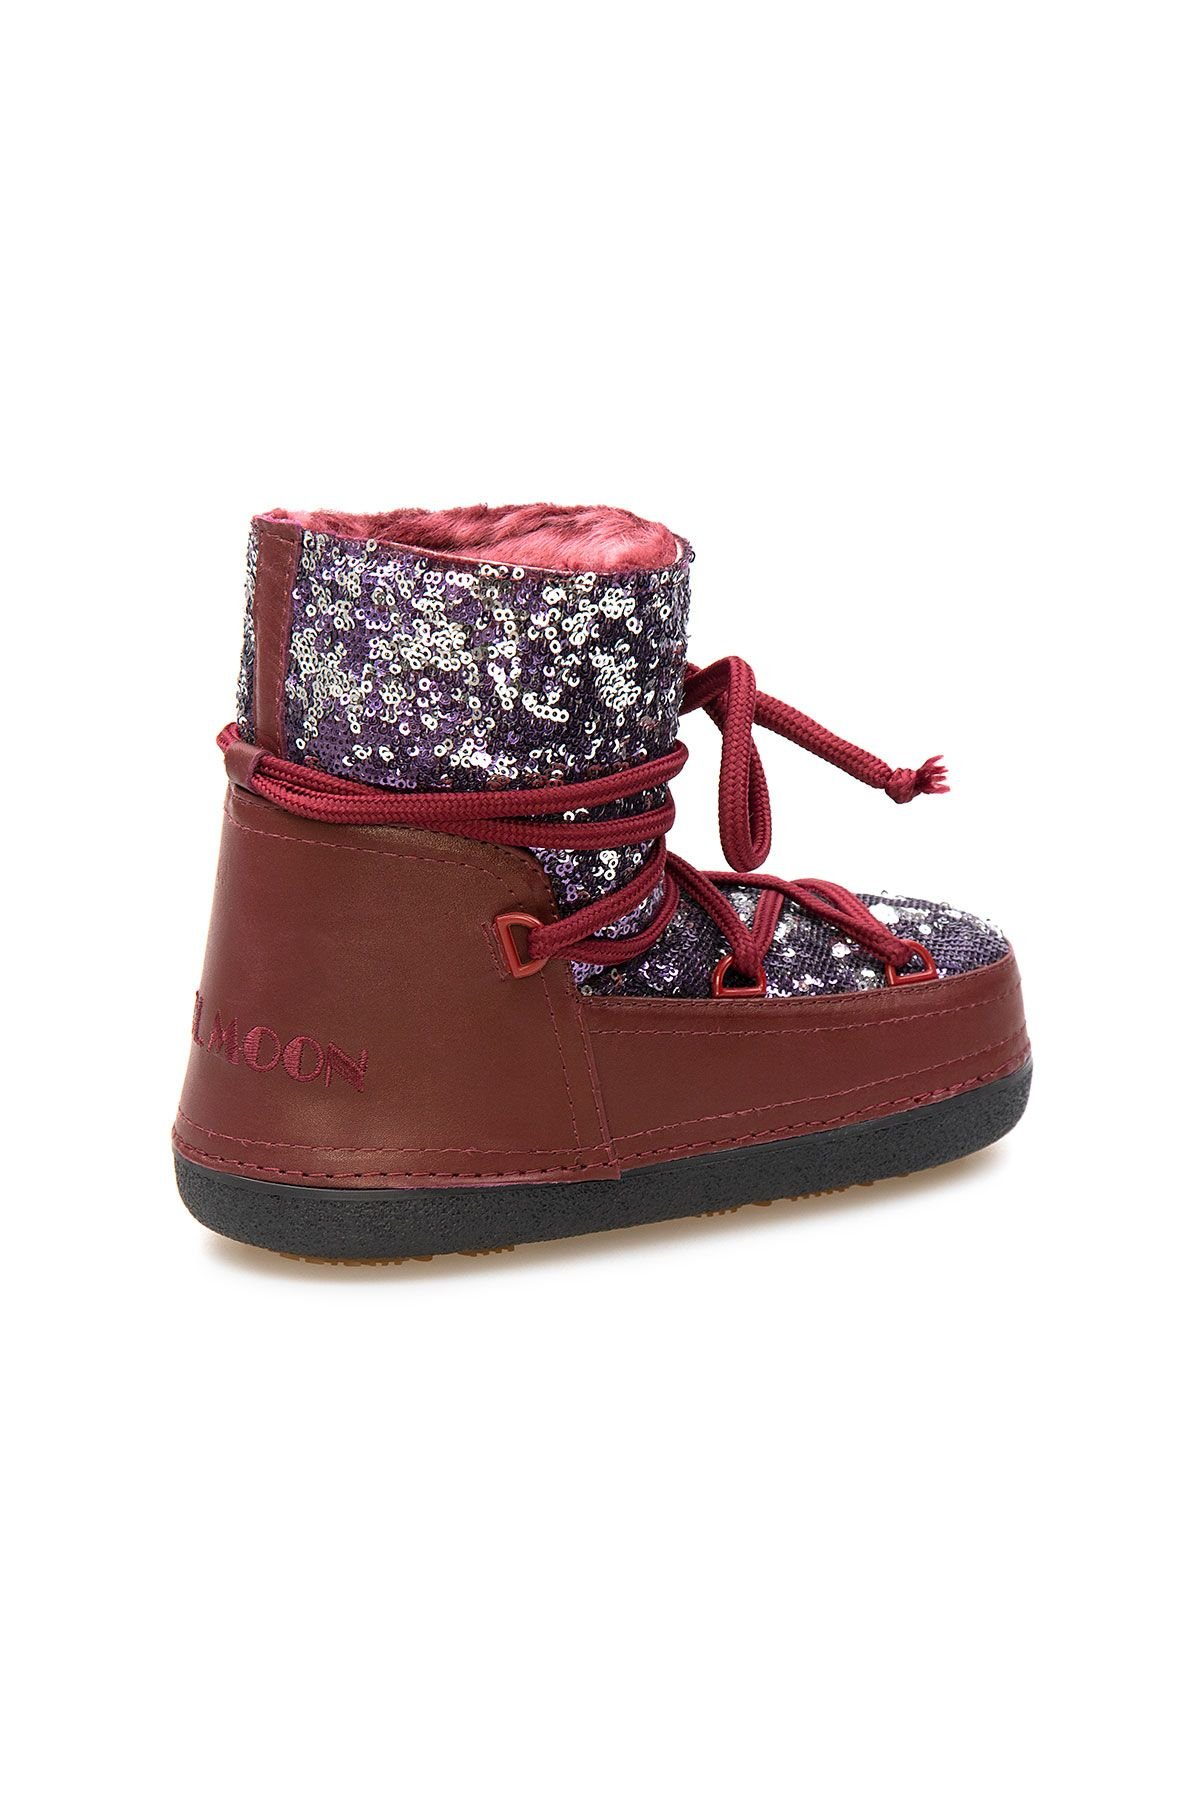 Cool Moon Sheepskin Women's Snow Boots With Sequin 251321 Claret red